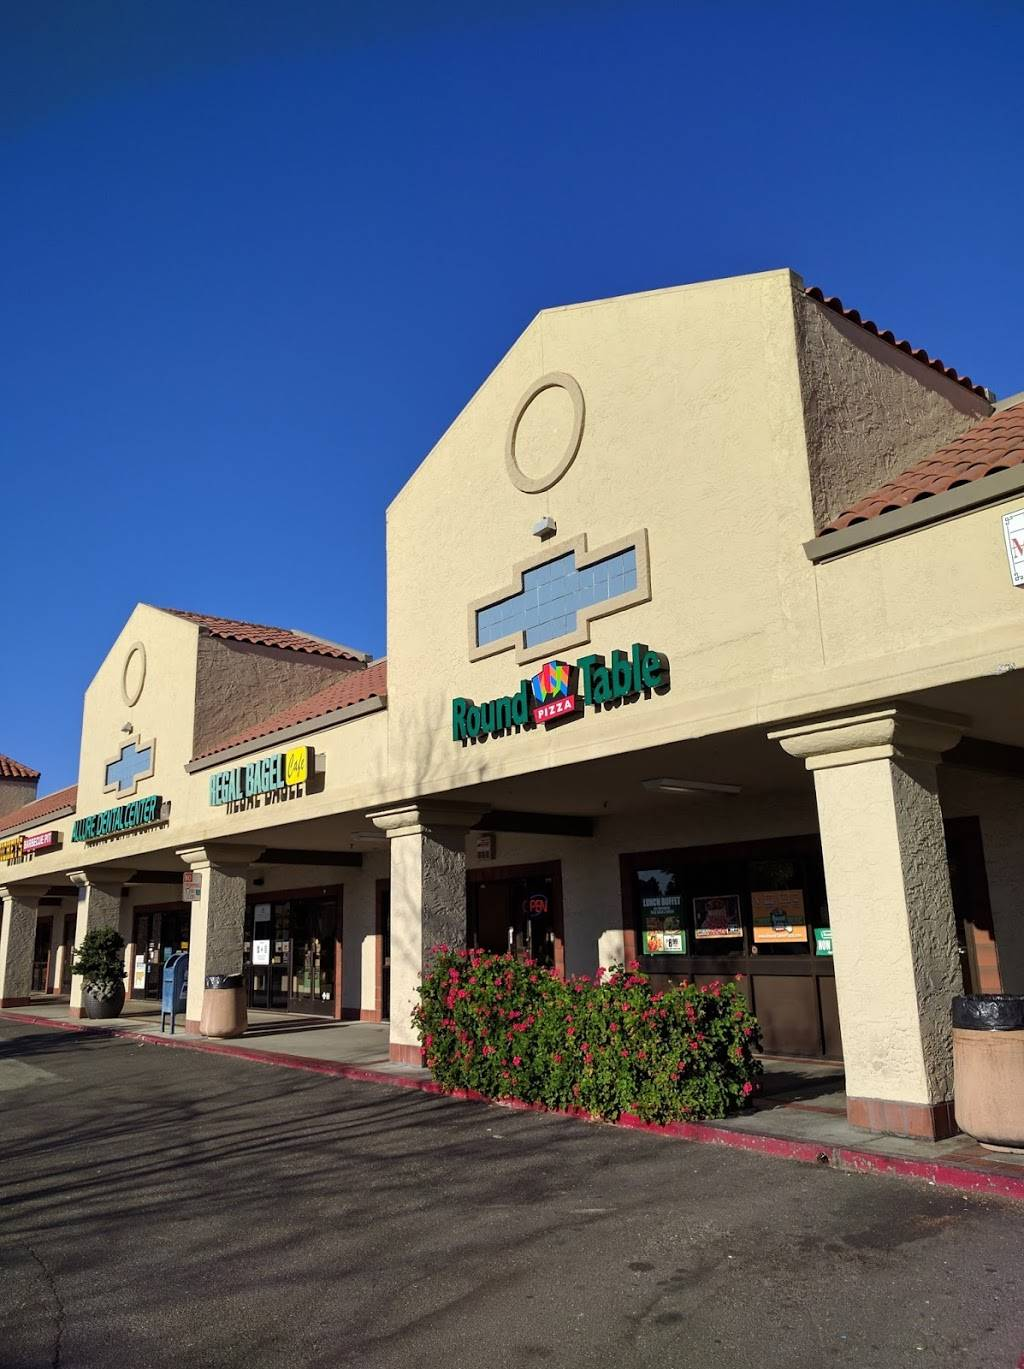 Round Table Pizza Meal Delivery 570 N Shoreline Blvd Mountain View Ca 94043 Usa